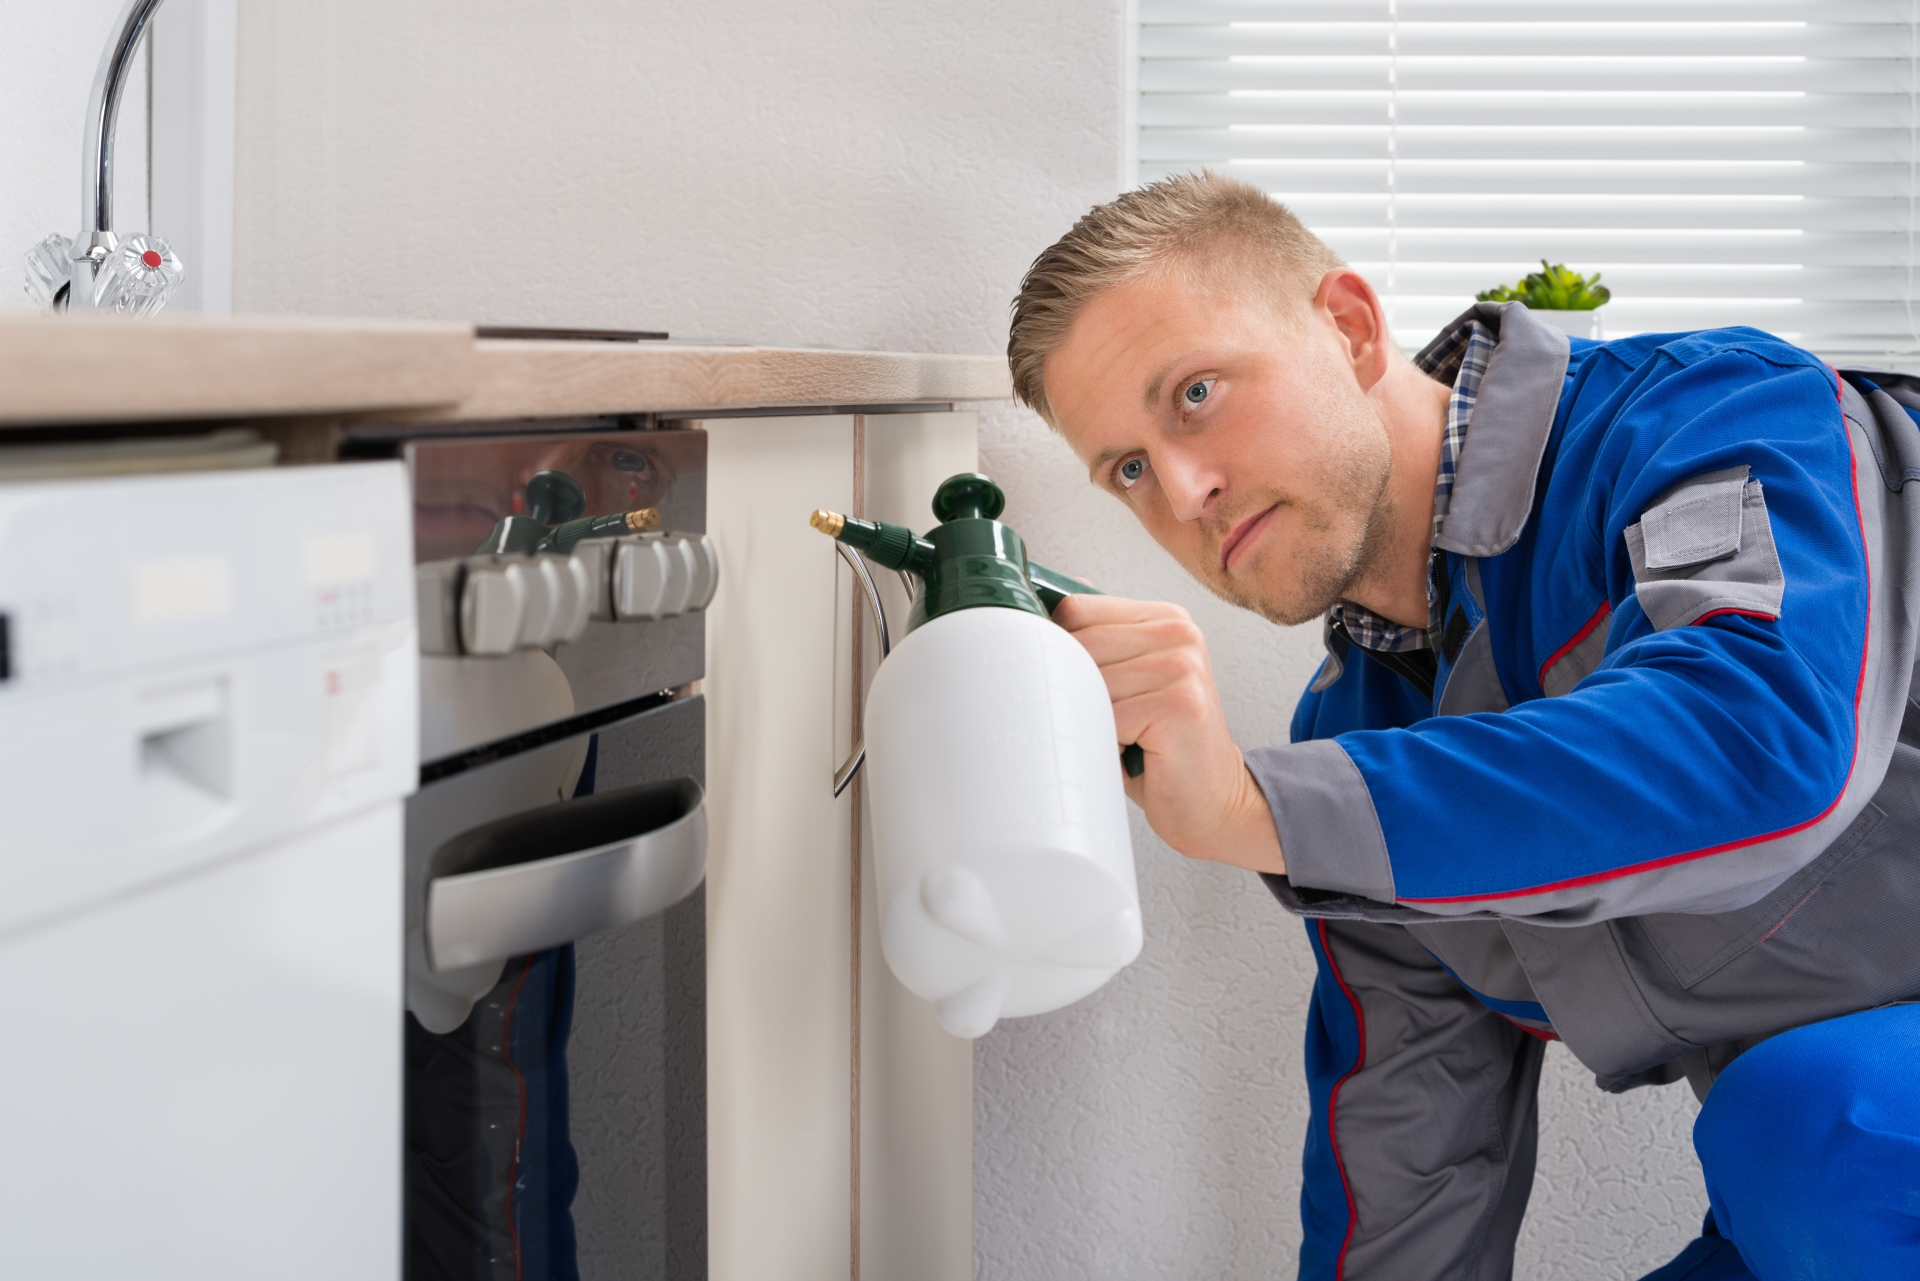 Pest Inspection, Pest Control in Plaistow, E13. Call Now 020 8166 9746